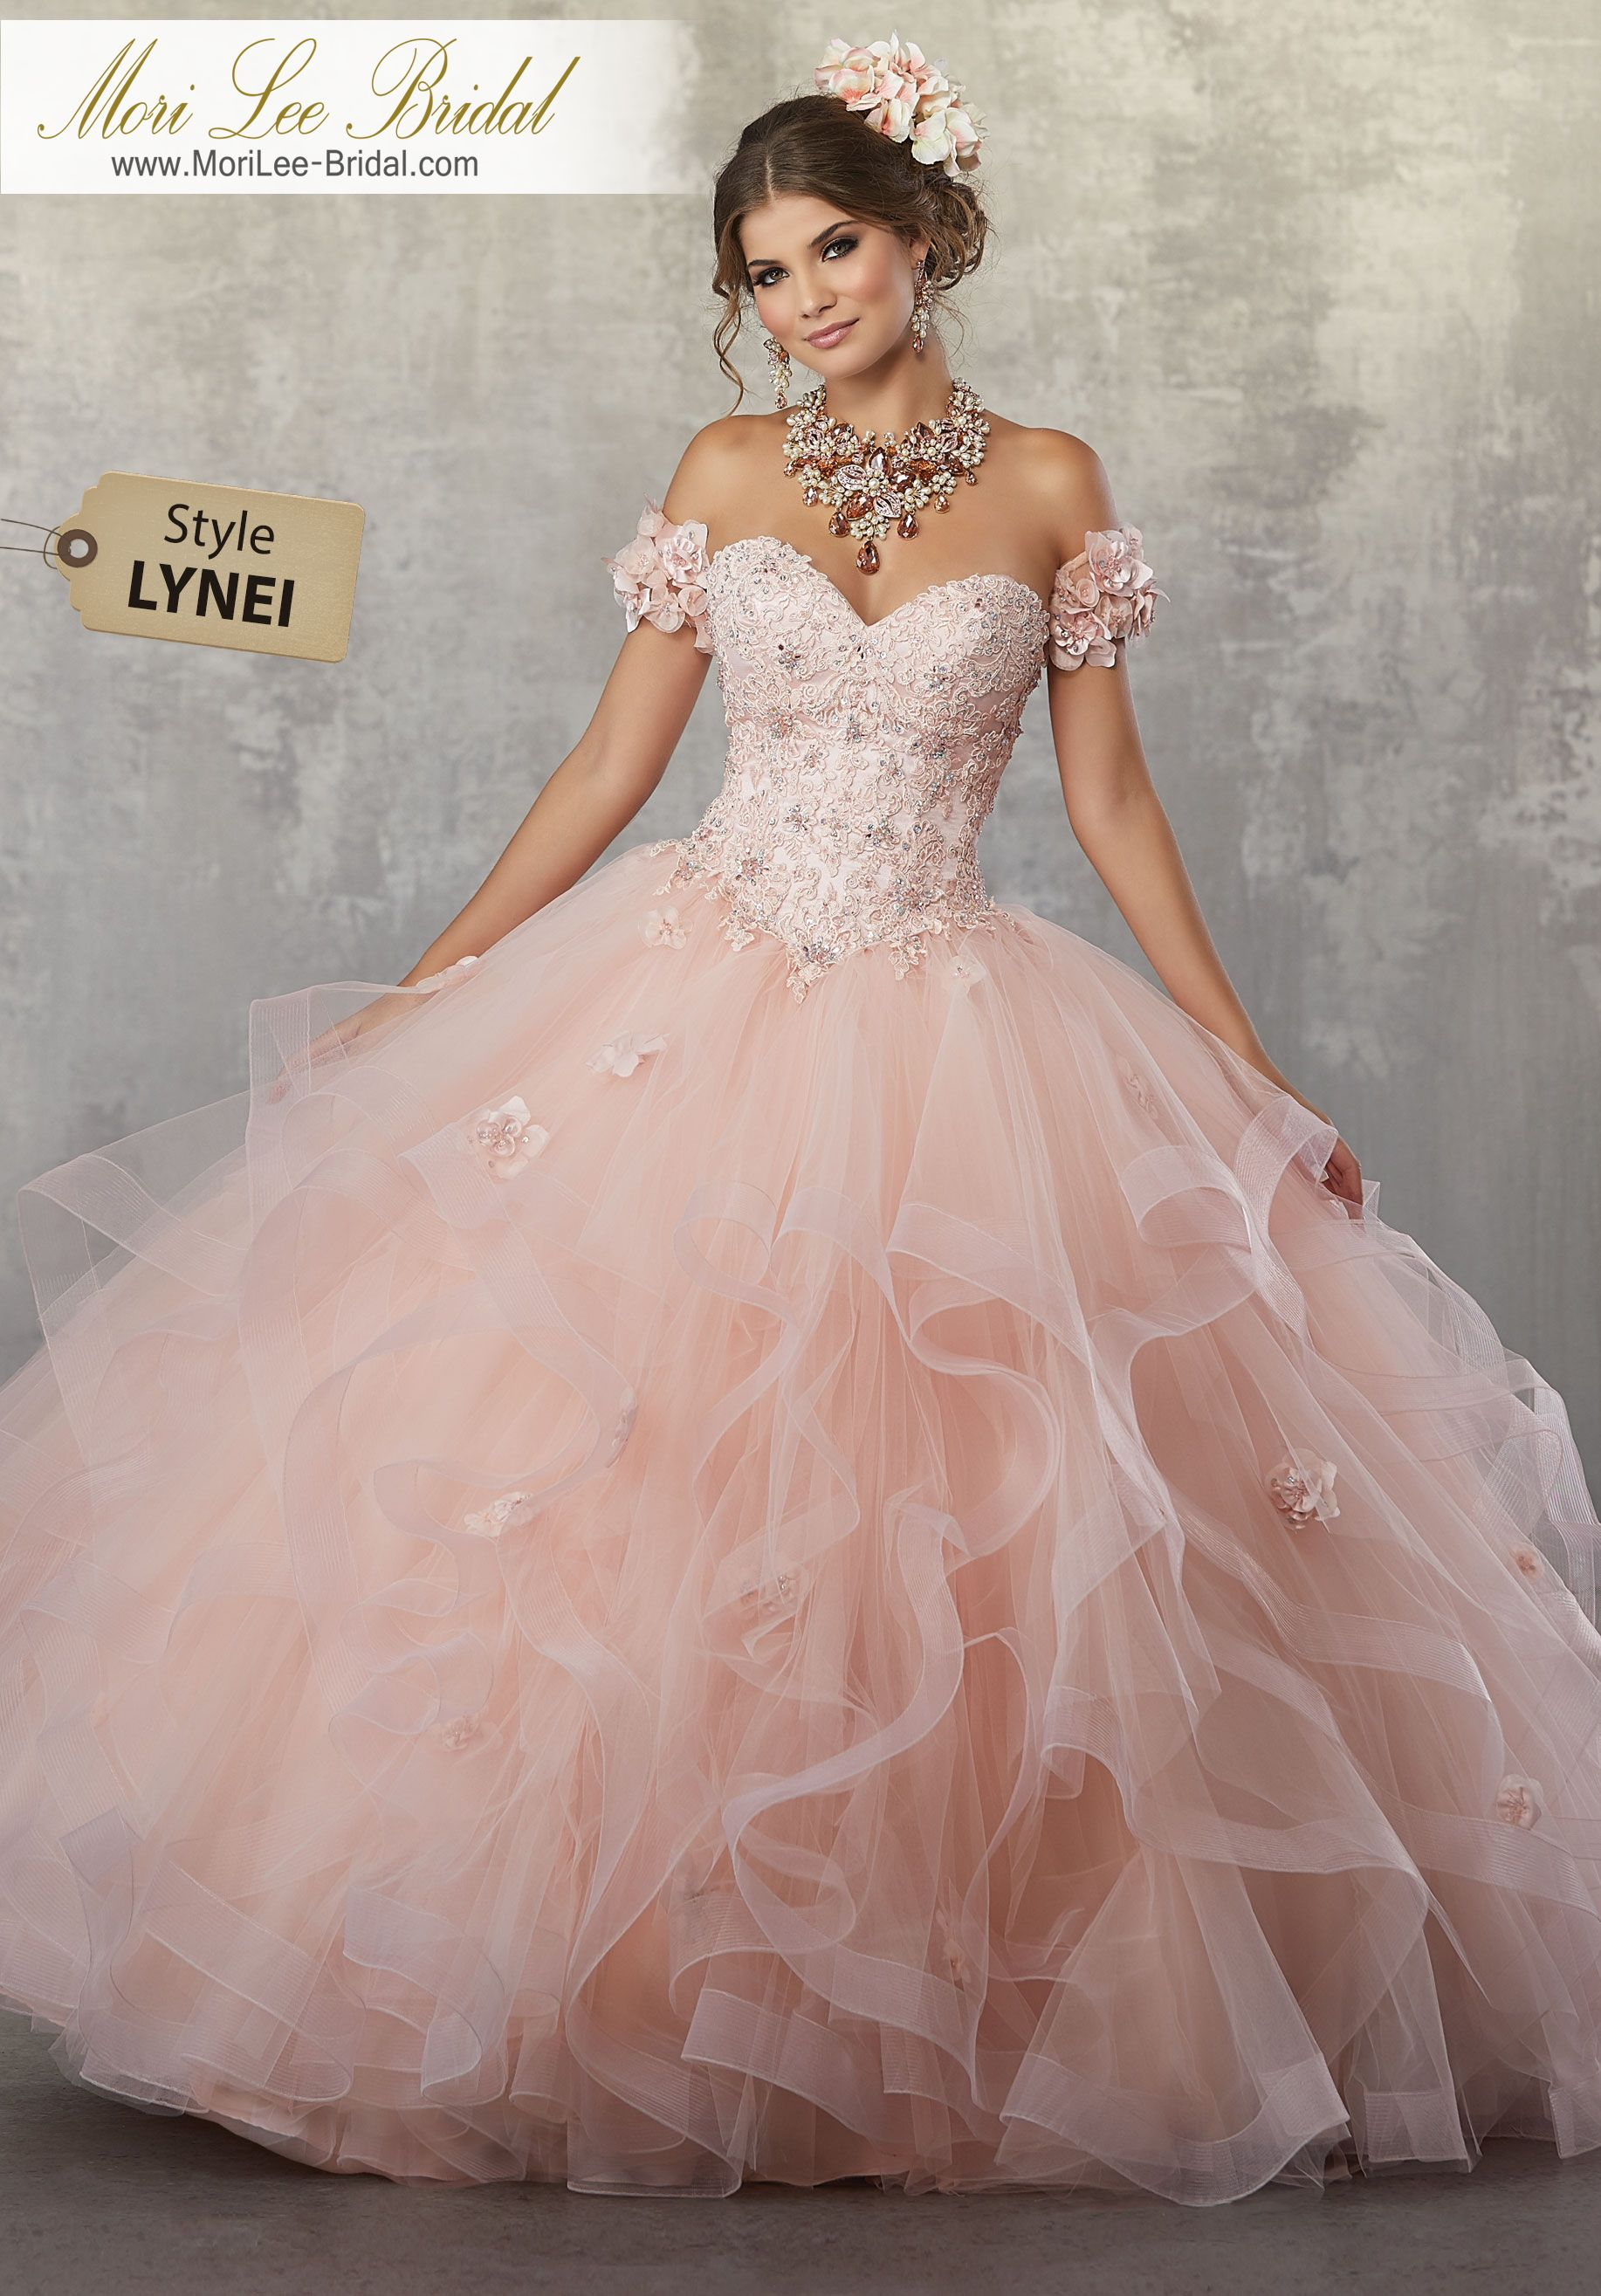 Style LYNEI Crystal Beaded, Lace Appliqués and Three-Dimensional ...